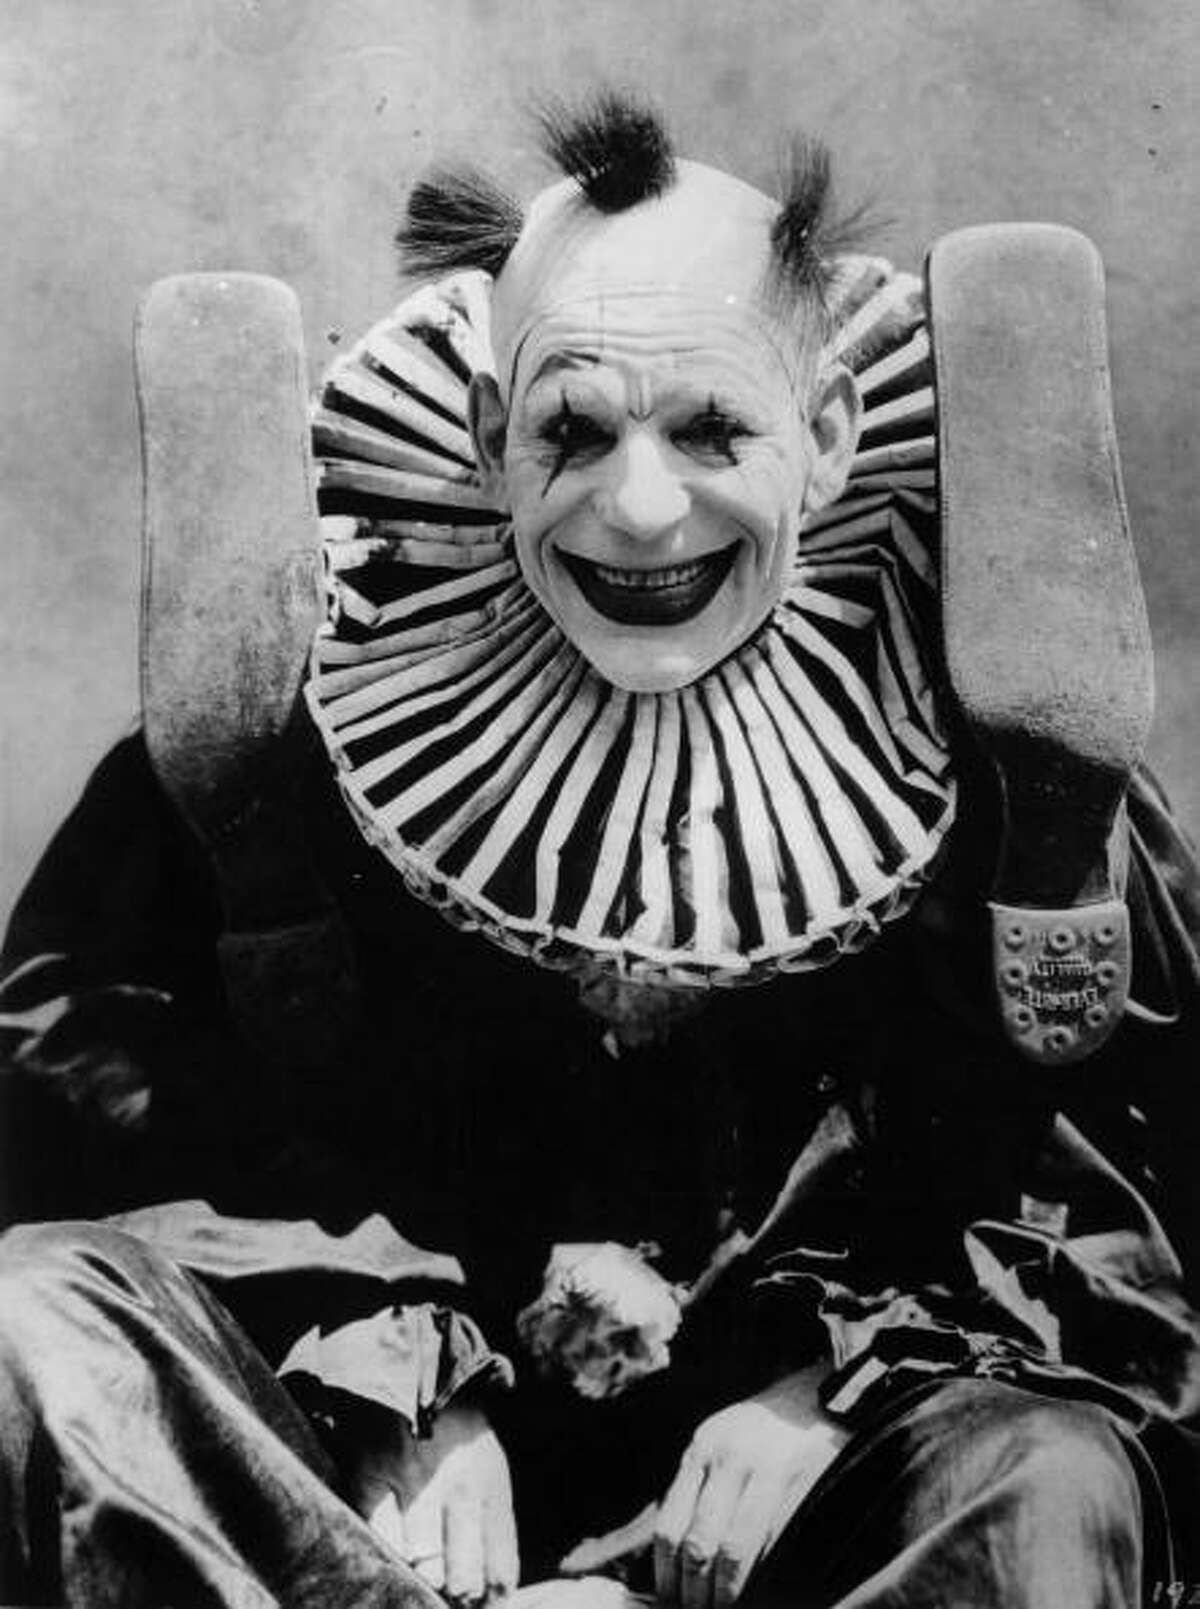 Accidentally Creepy Clowns 1924: American actor Lon Chaney (1883 - 1930) dressed as a clown for his role in the film 'He Who Gets Slapped', directed by Victor Sjostrom for MGM. (Photo by Hulton Archive/Getty Images)